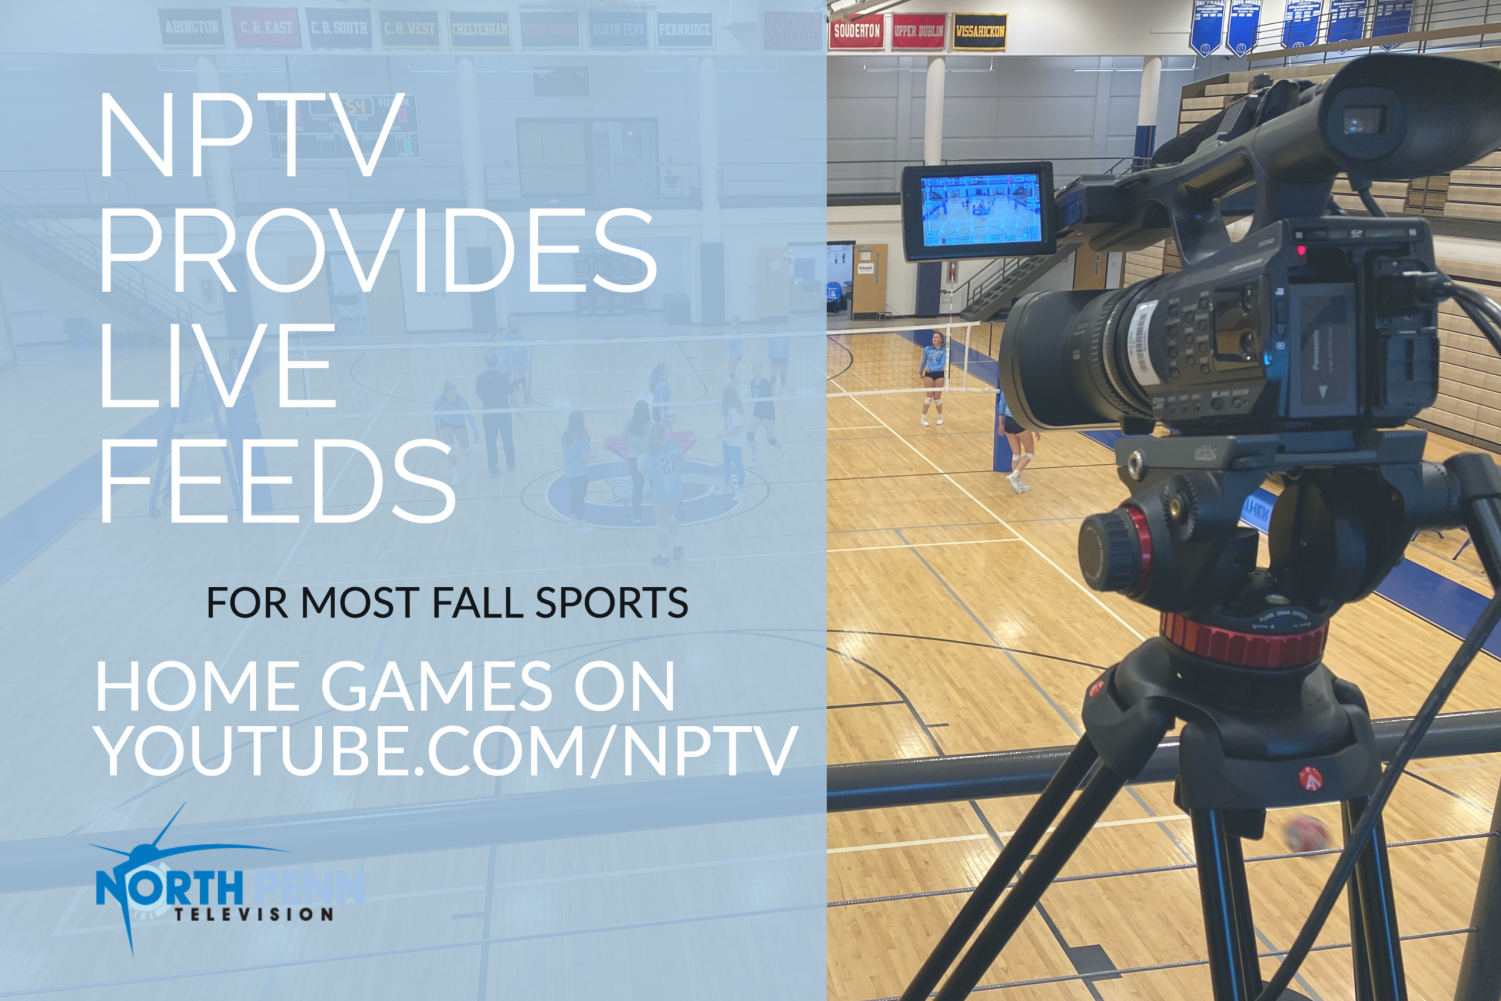 NPTV covers games